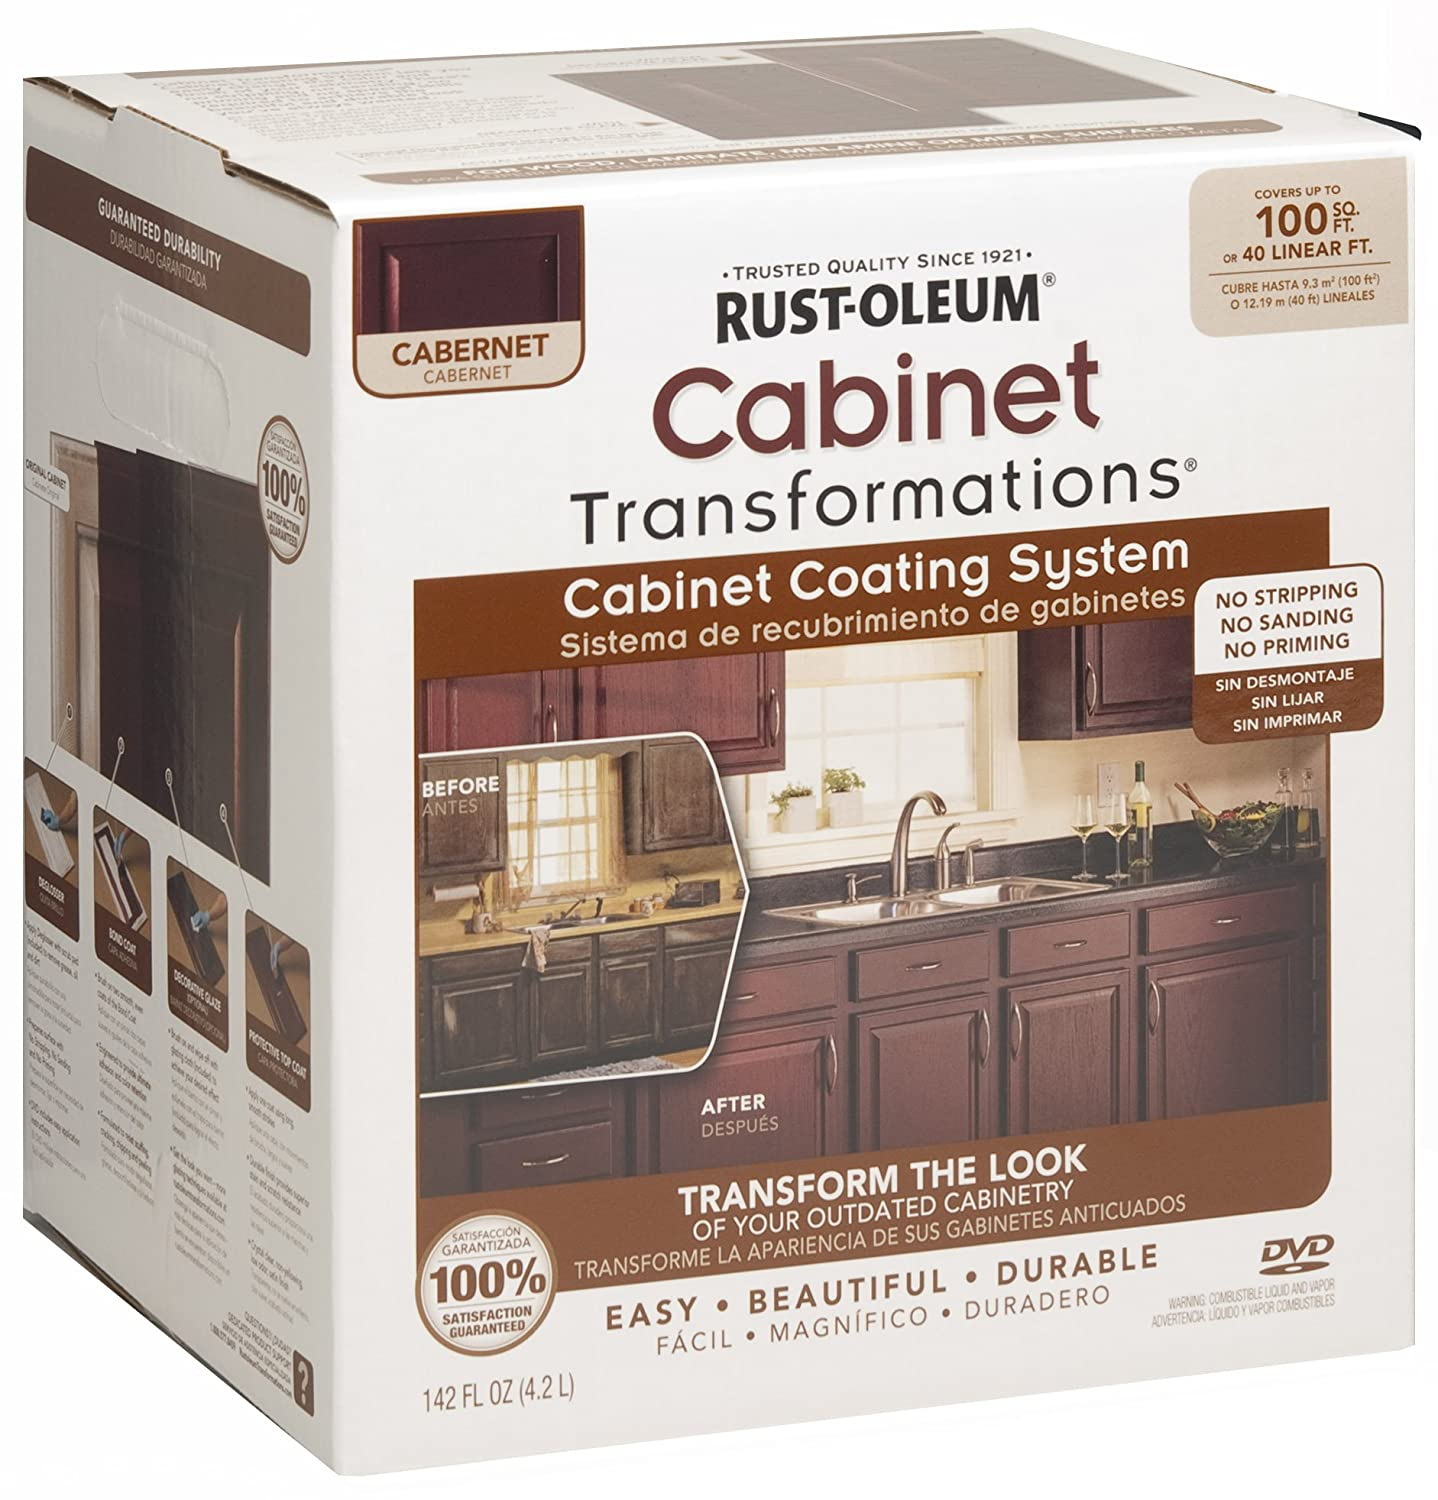 Home Depot Rustoleum Cabinet Rust Oleum 263233 Cabinet Transformations Small Kit Cabernet